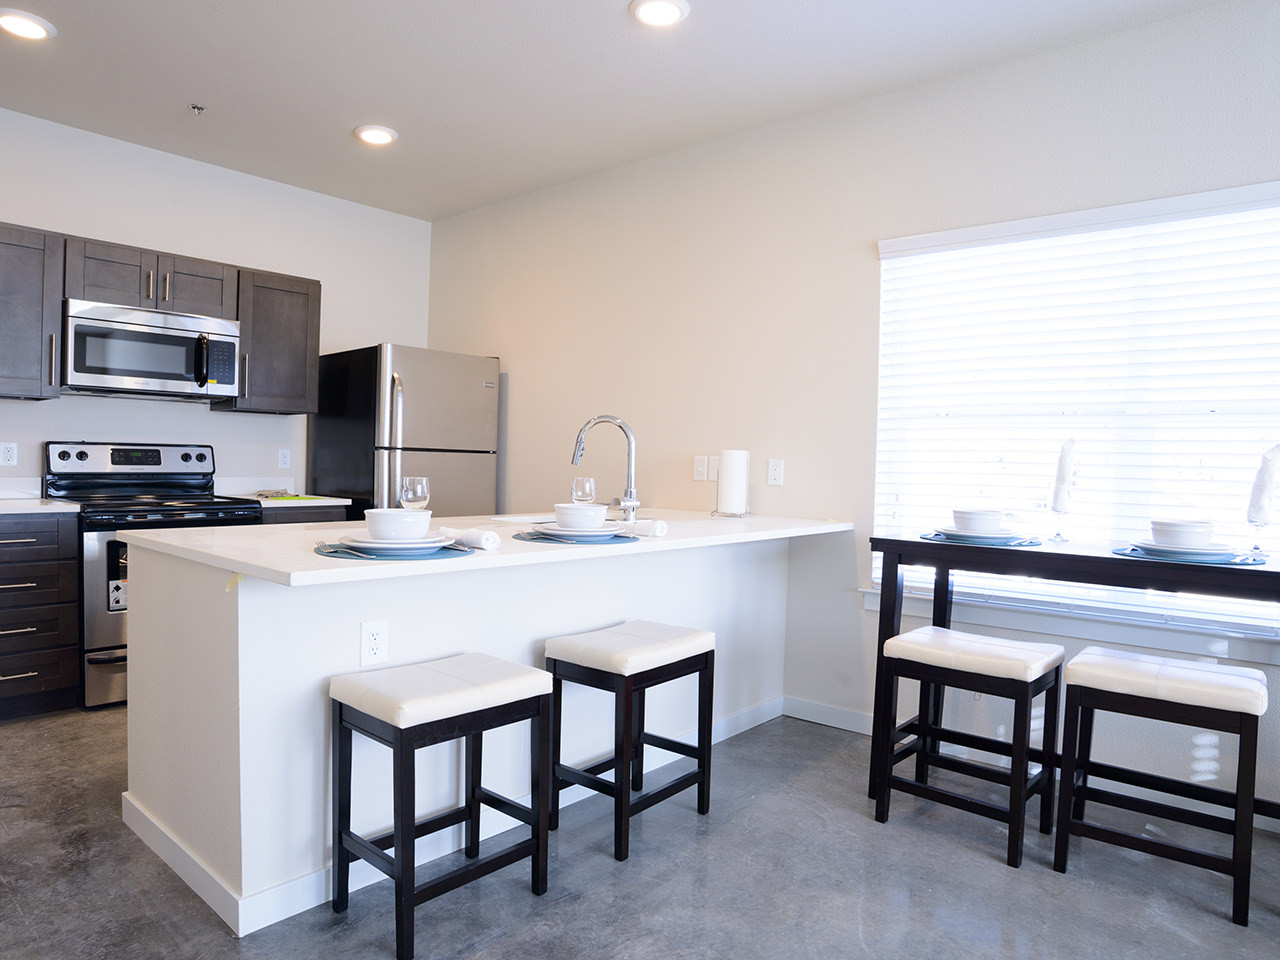 Apartments in fort collins for rent studio 1 bedroom - 1 bedroom apartments fort collins ...